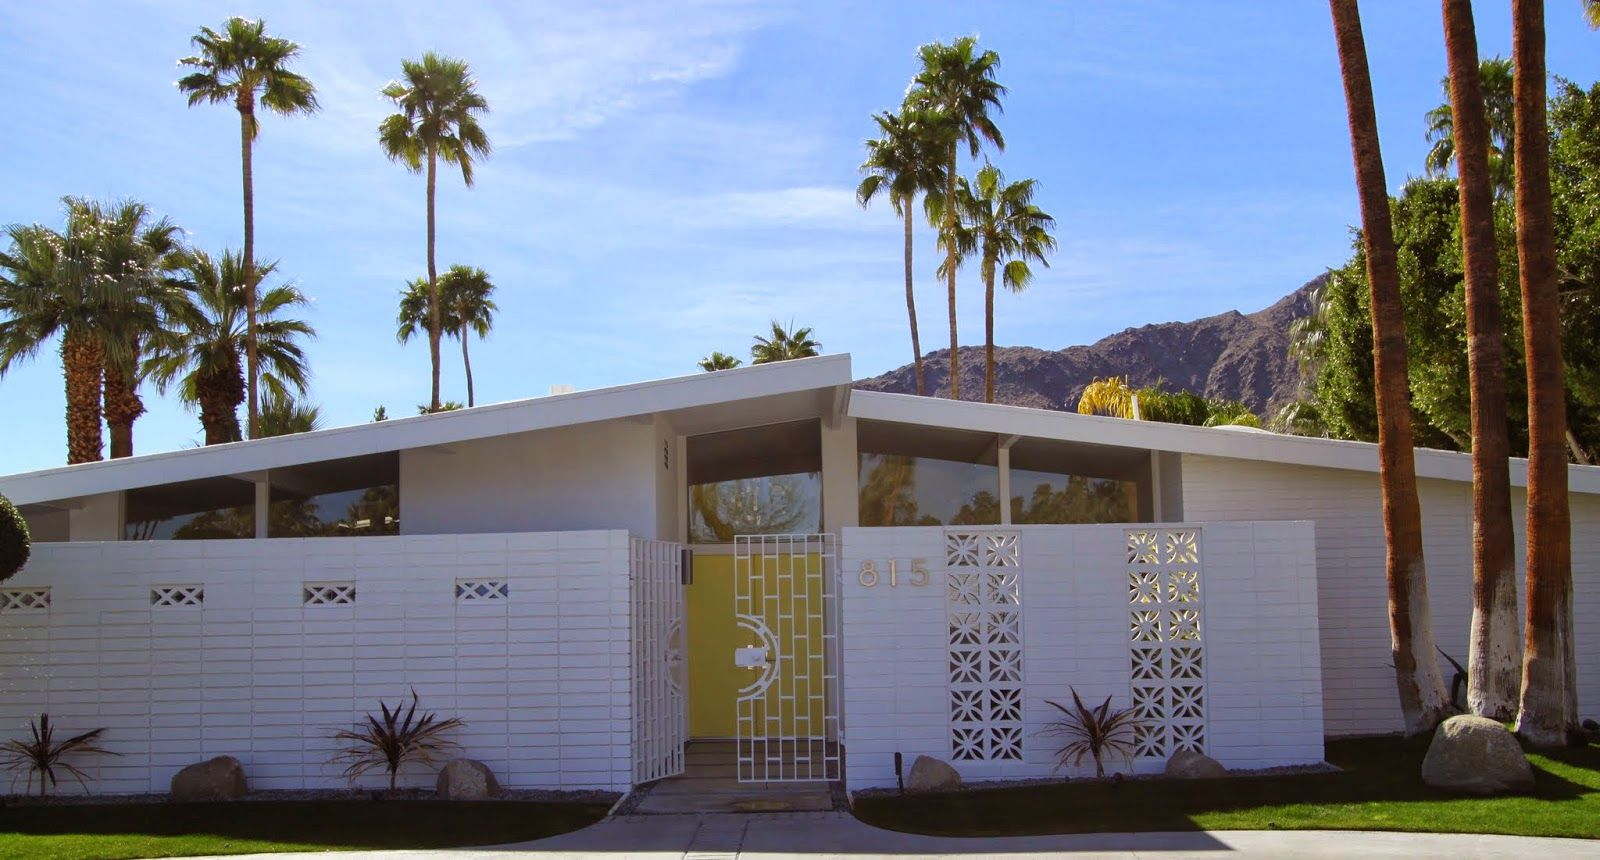 Walking Tour Vista Las Palmas Palm Springs Modernism Week Mid Century Mod Palm Springs Mid Century Modern Mid Century Exterior Modernism Week Palm Springs